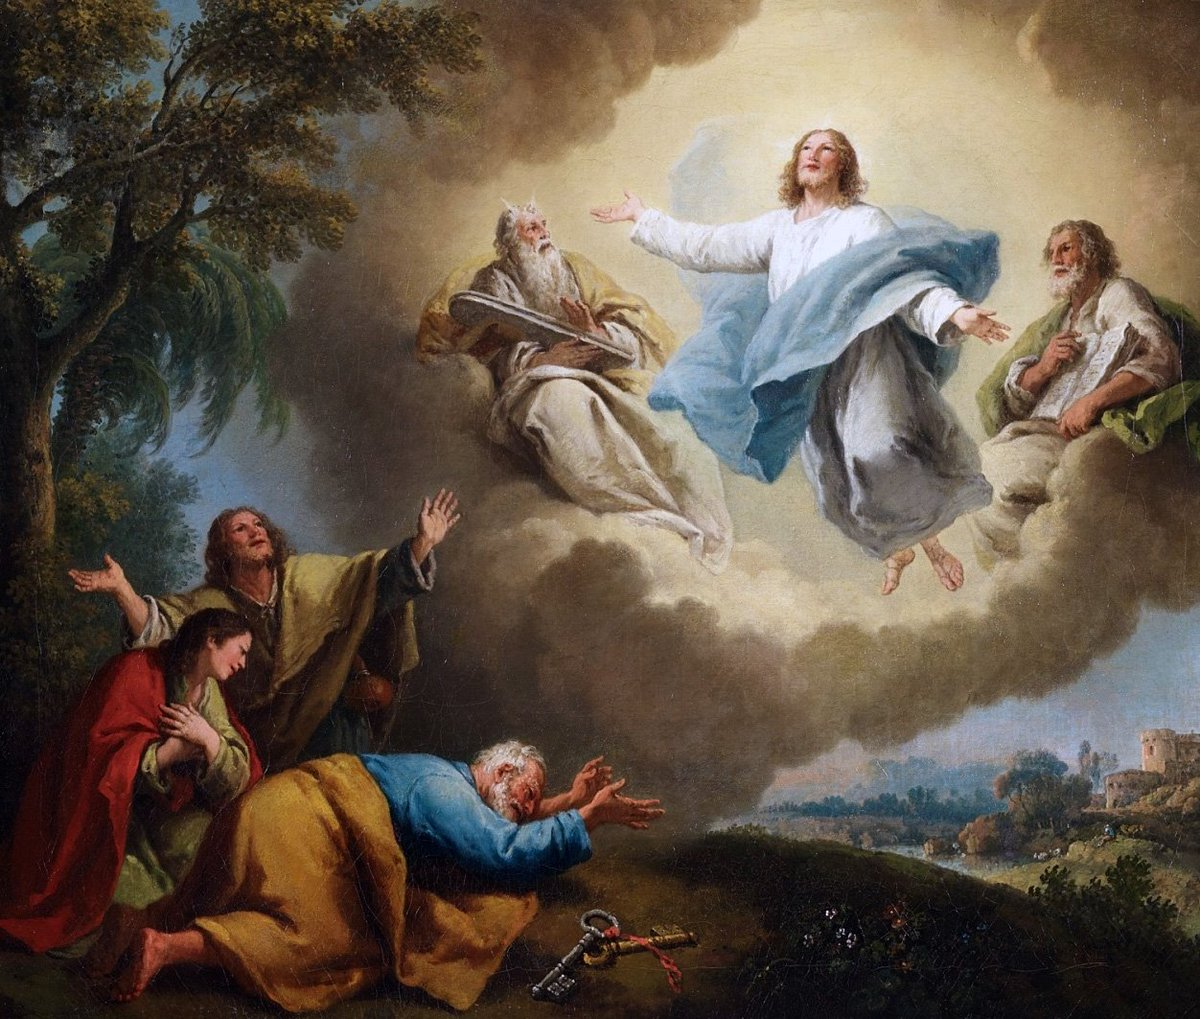 Feast_of_the_Transfiguration_of_the_Lord.jpg